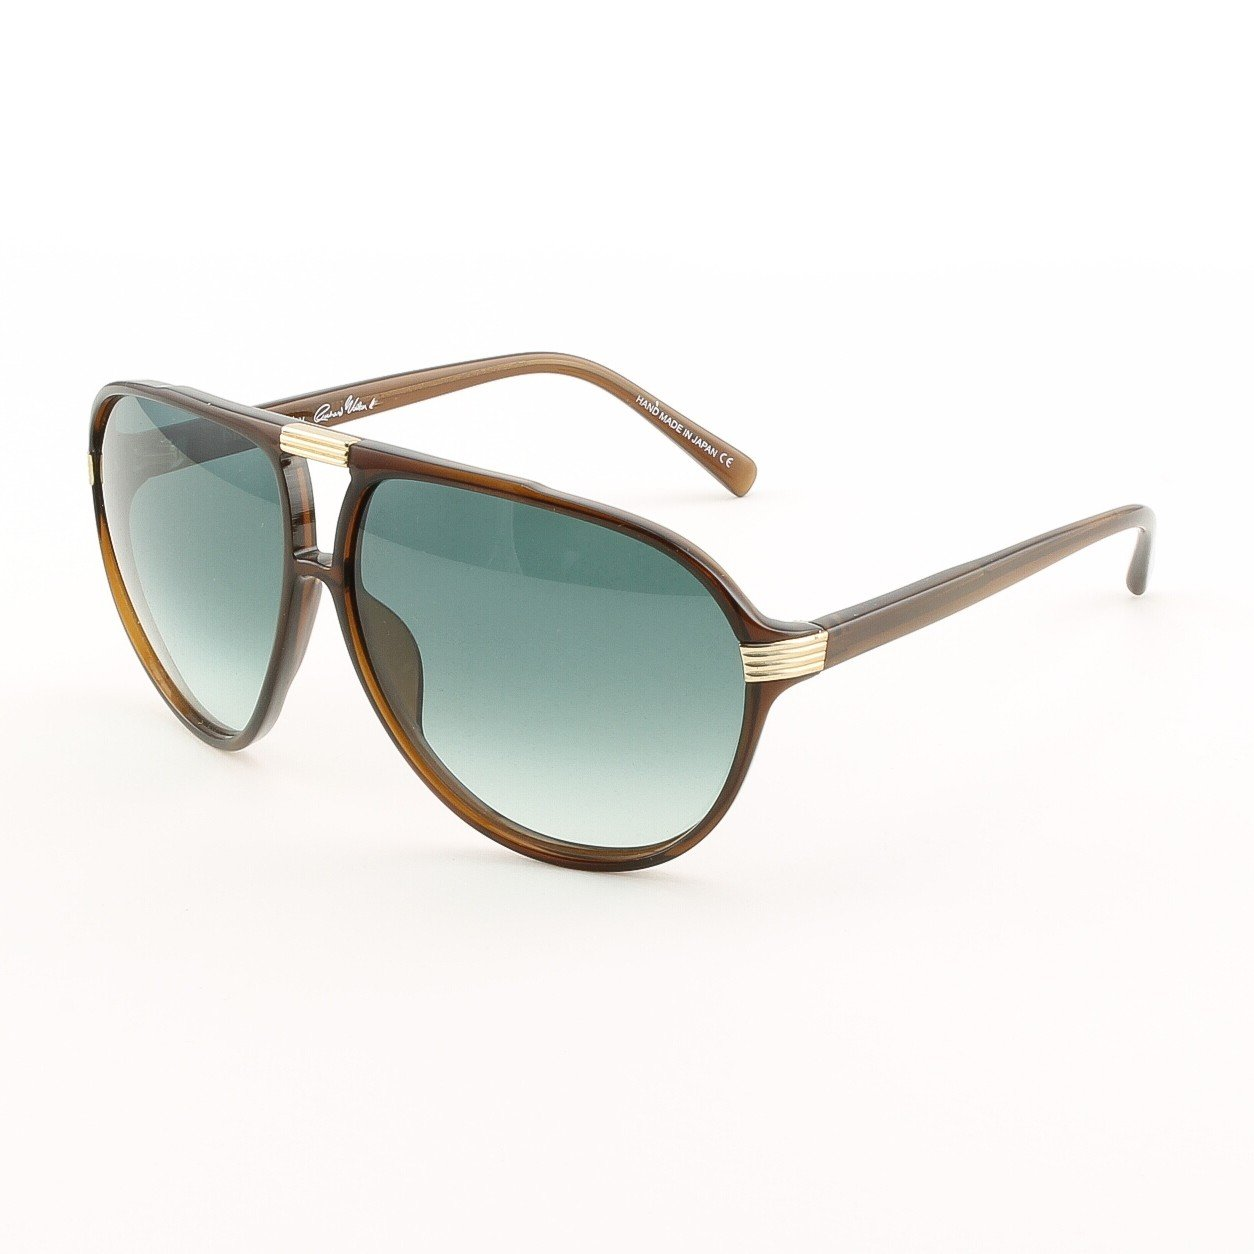 Blinde The Shakedown Unisex Aviator Sunglasses Col. Brown Crystal with Blue Gradient Lenses